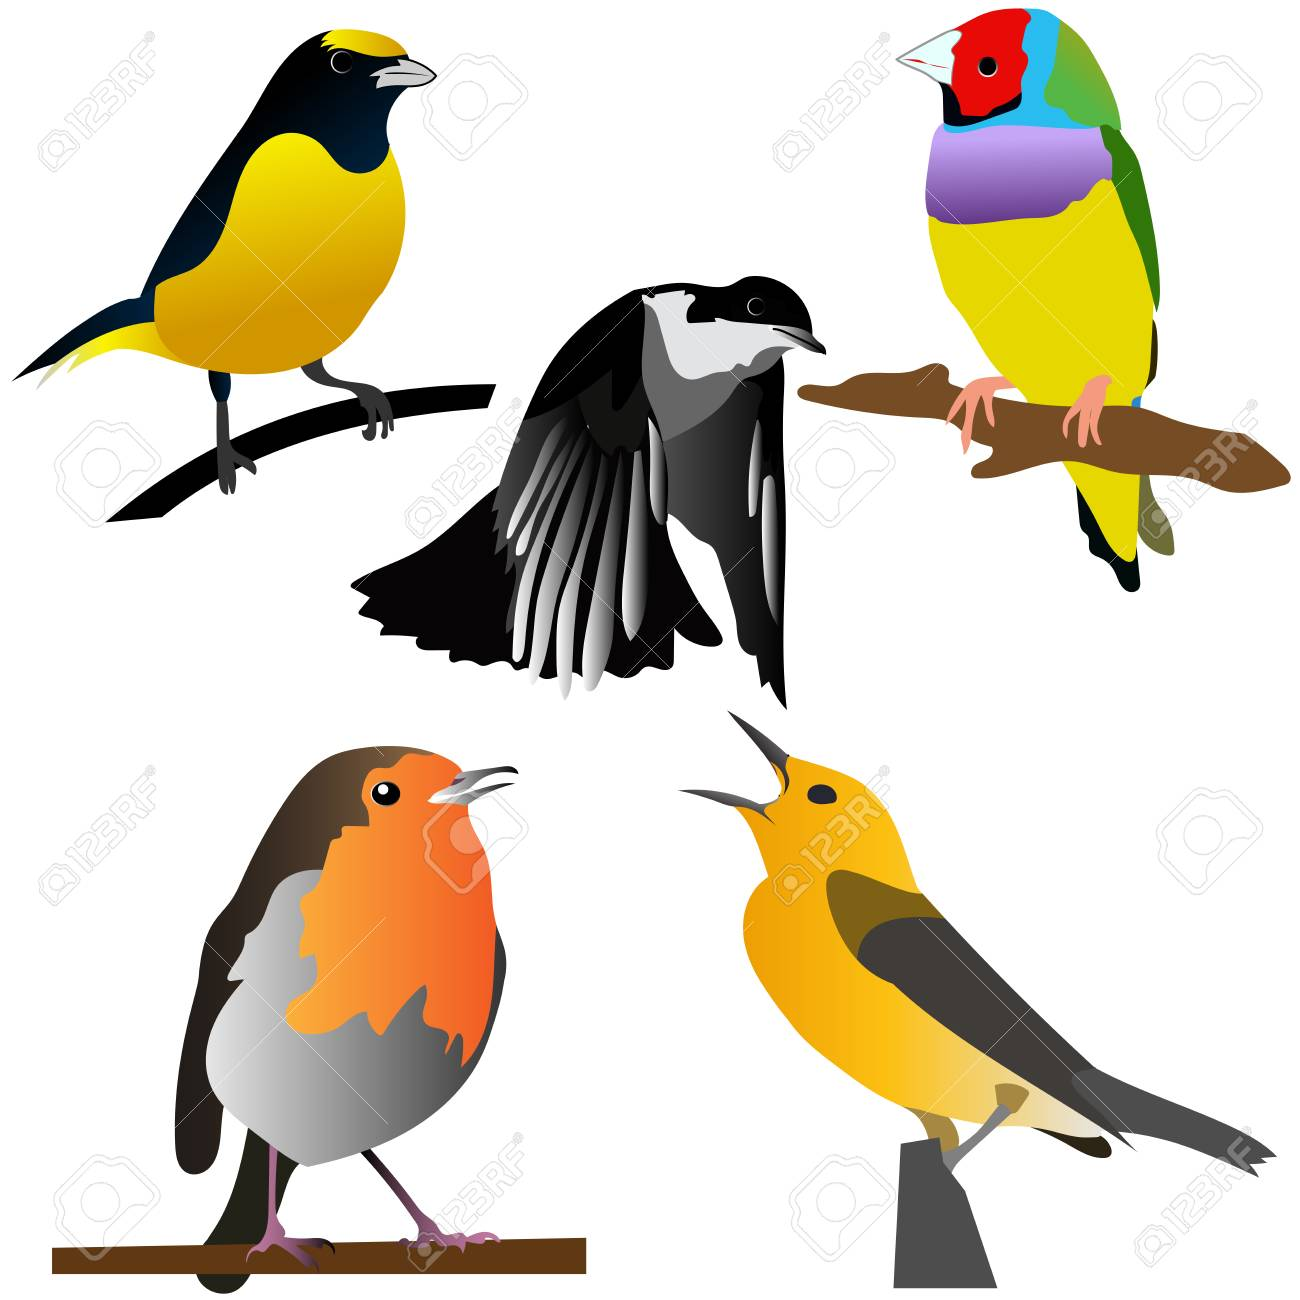 Collection Of Colorful Birds Vector Illustrations Good For Kids